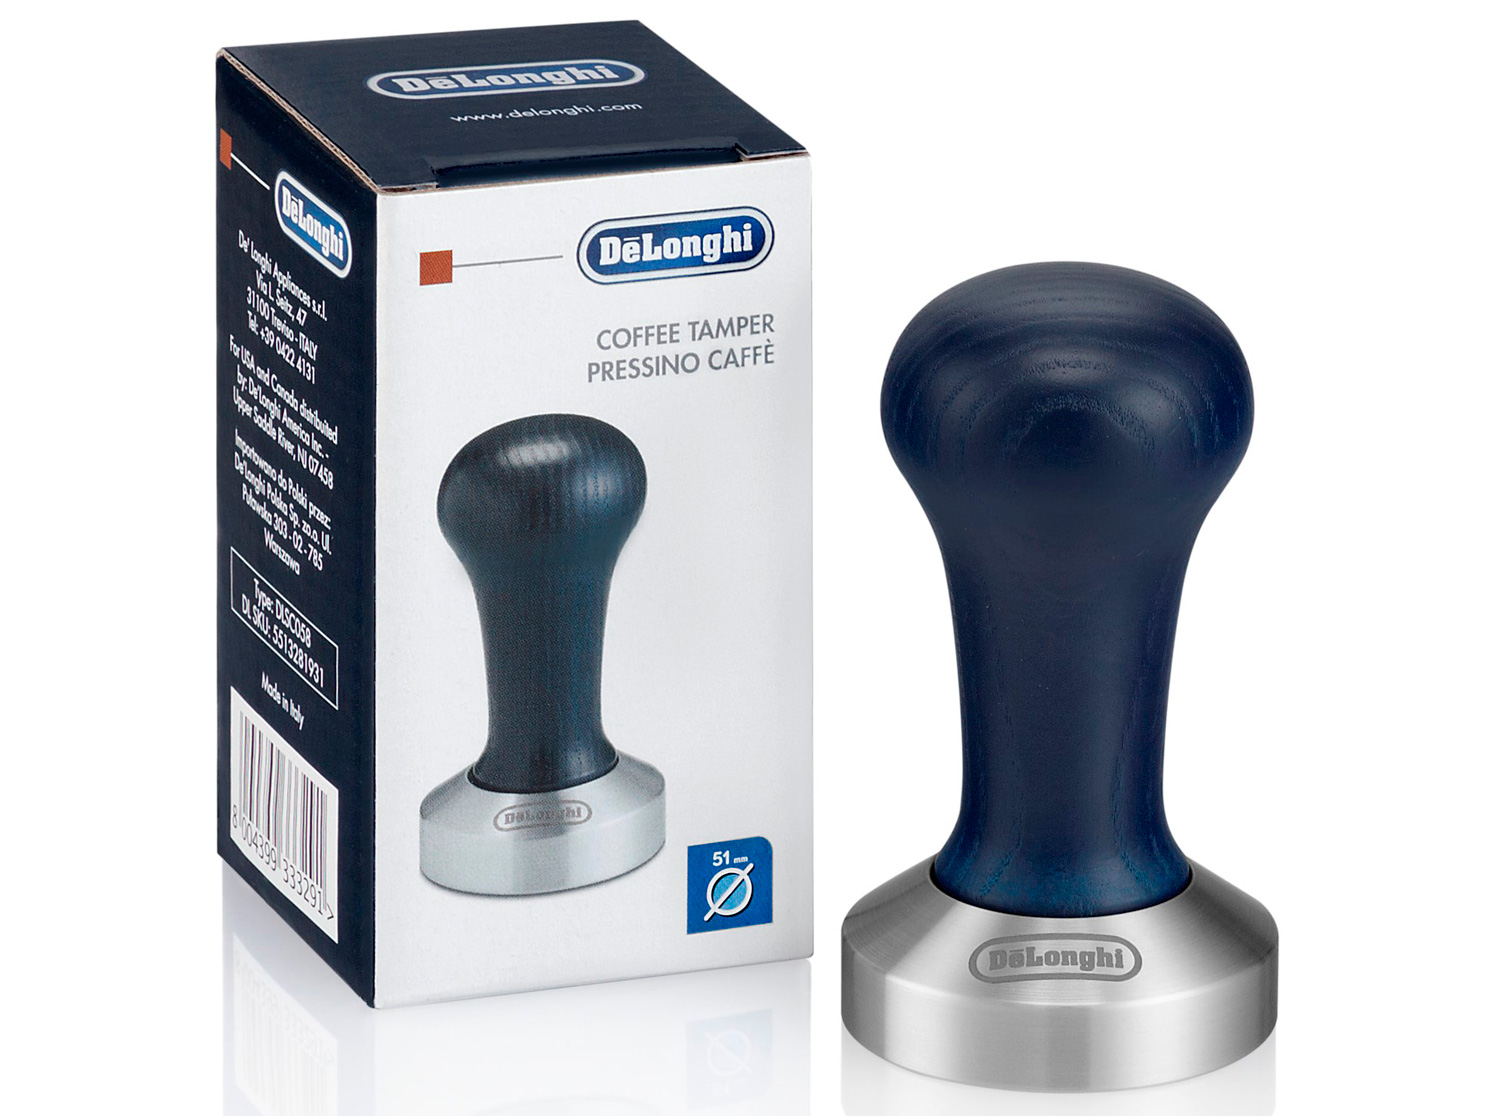 a coffee tamper from De'Longhi